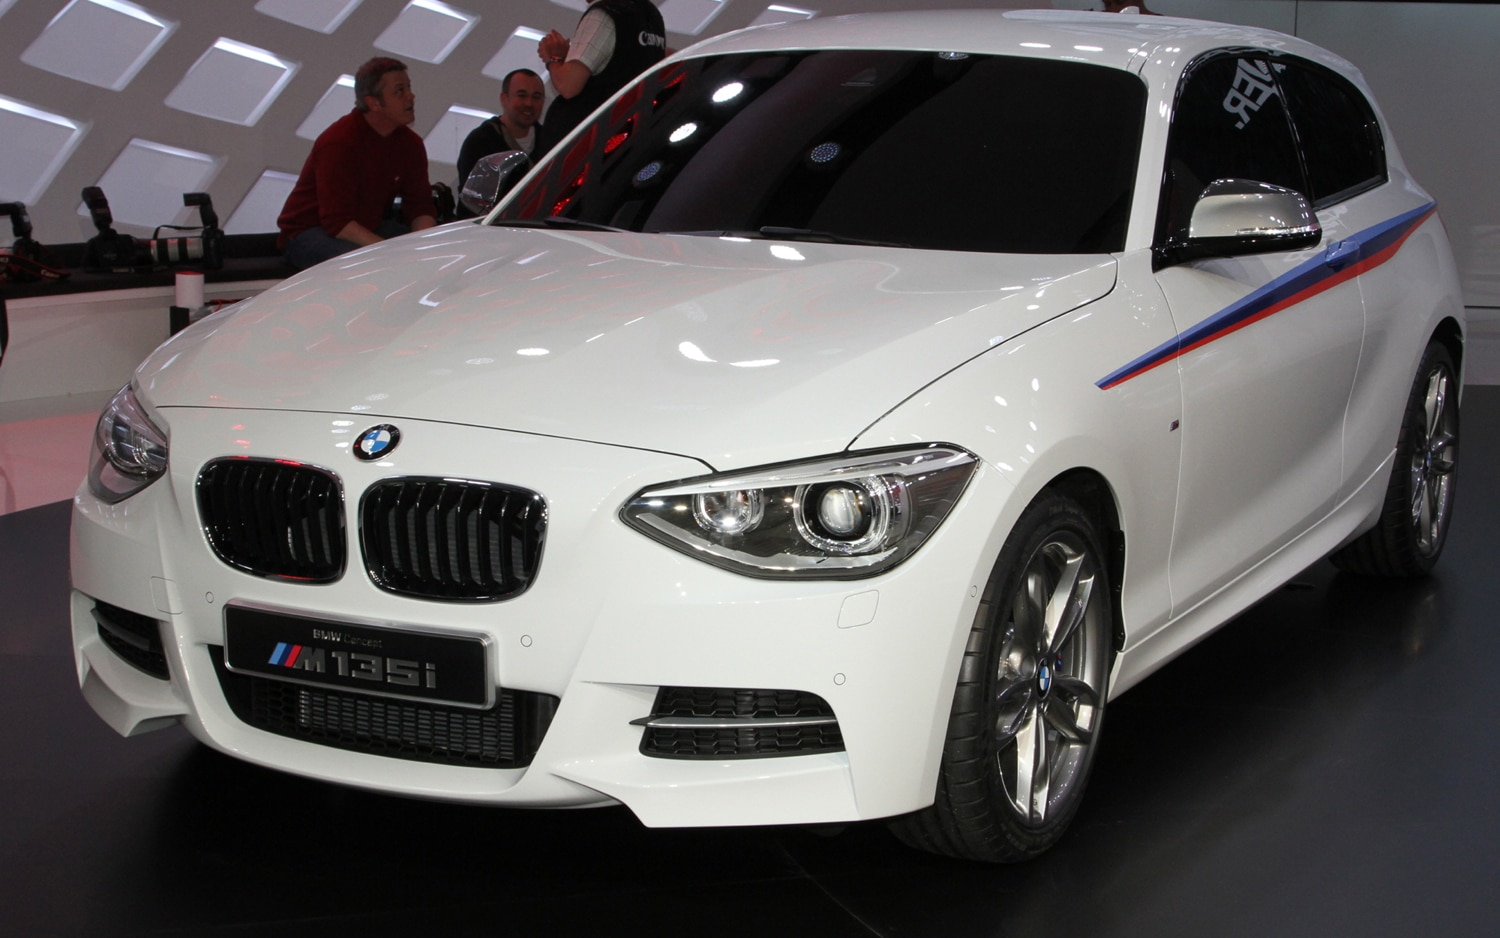 First Look: 2012 BMW Concept M135i - Automobile Magazine